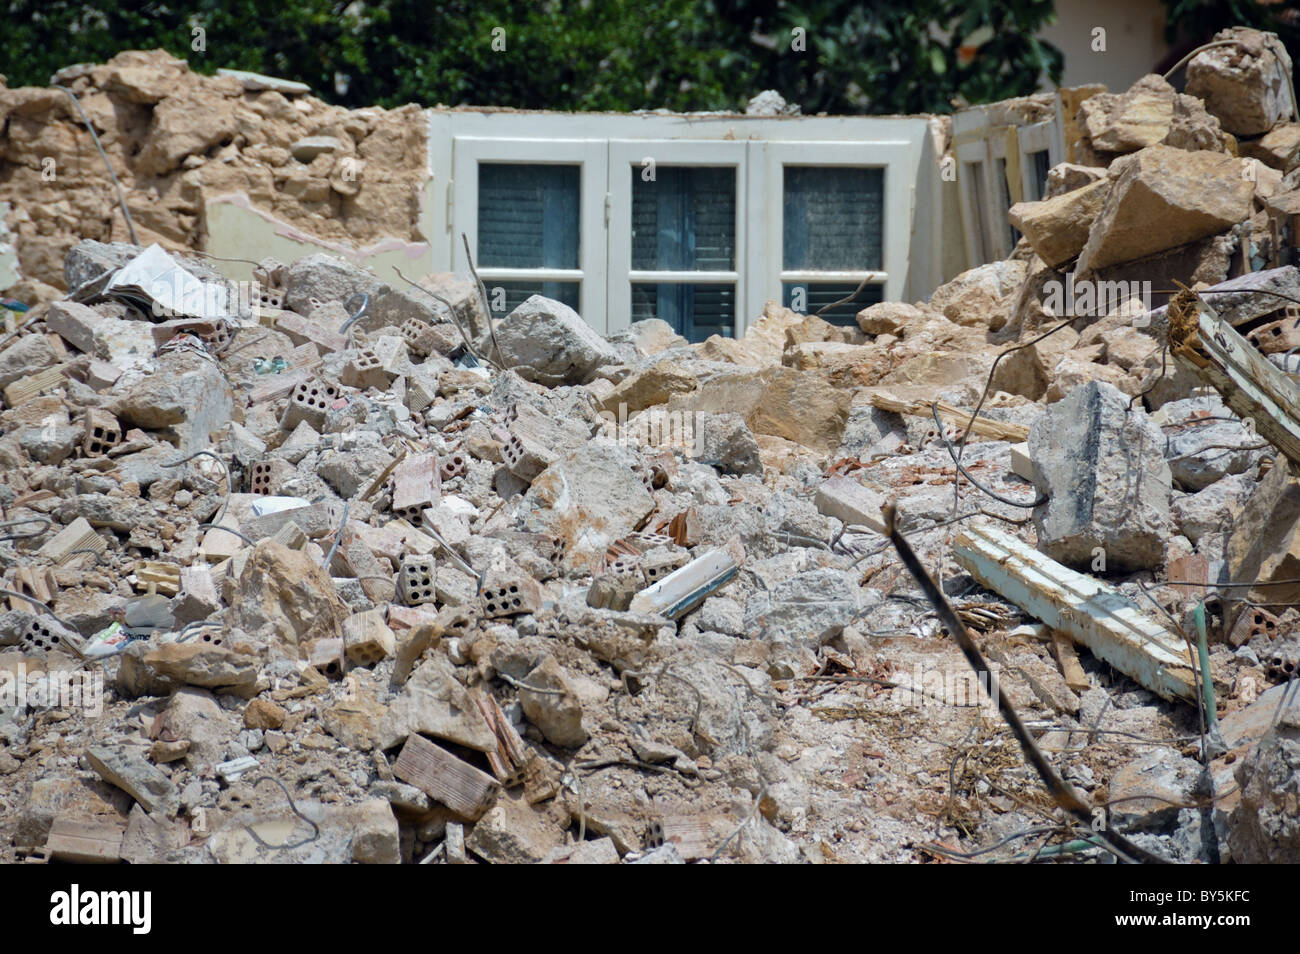 Pile of rubble from a demolished house. - Stock Image